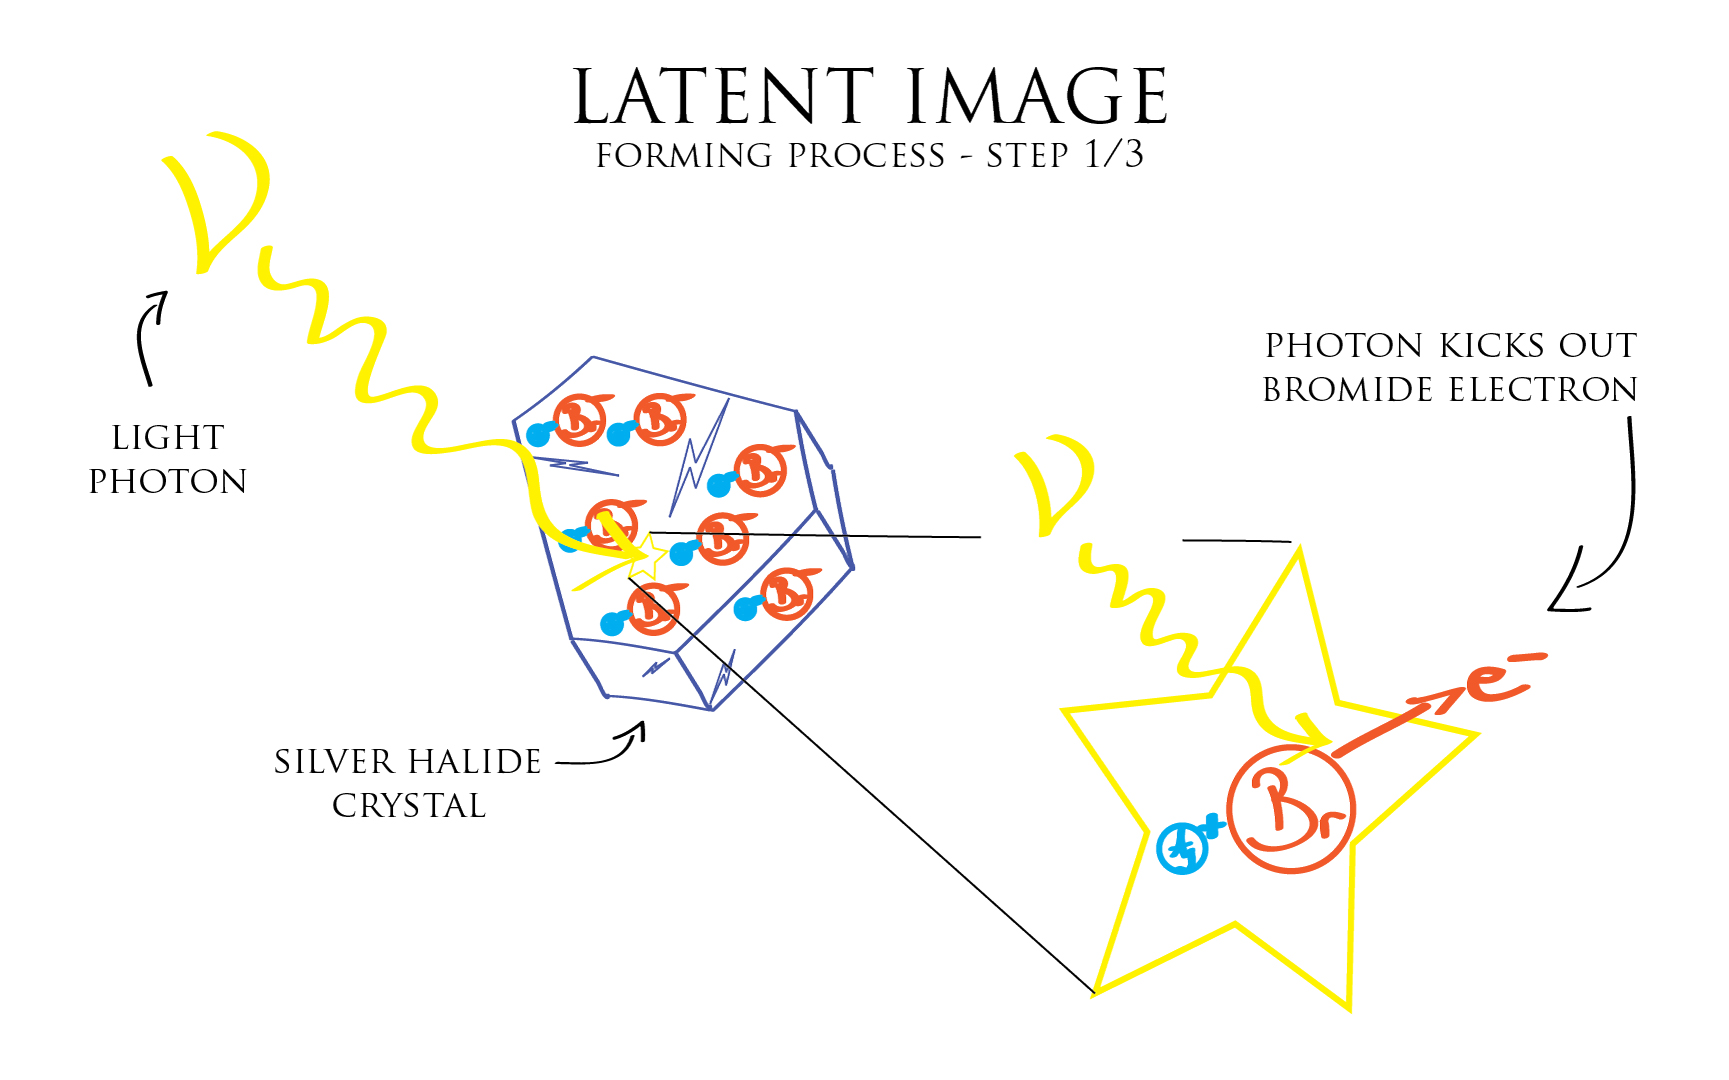 Illustration: latent image forming process 1-3